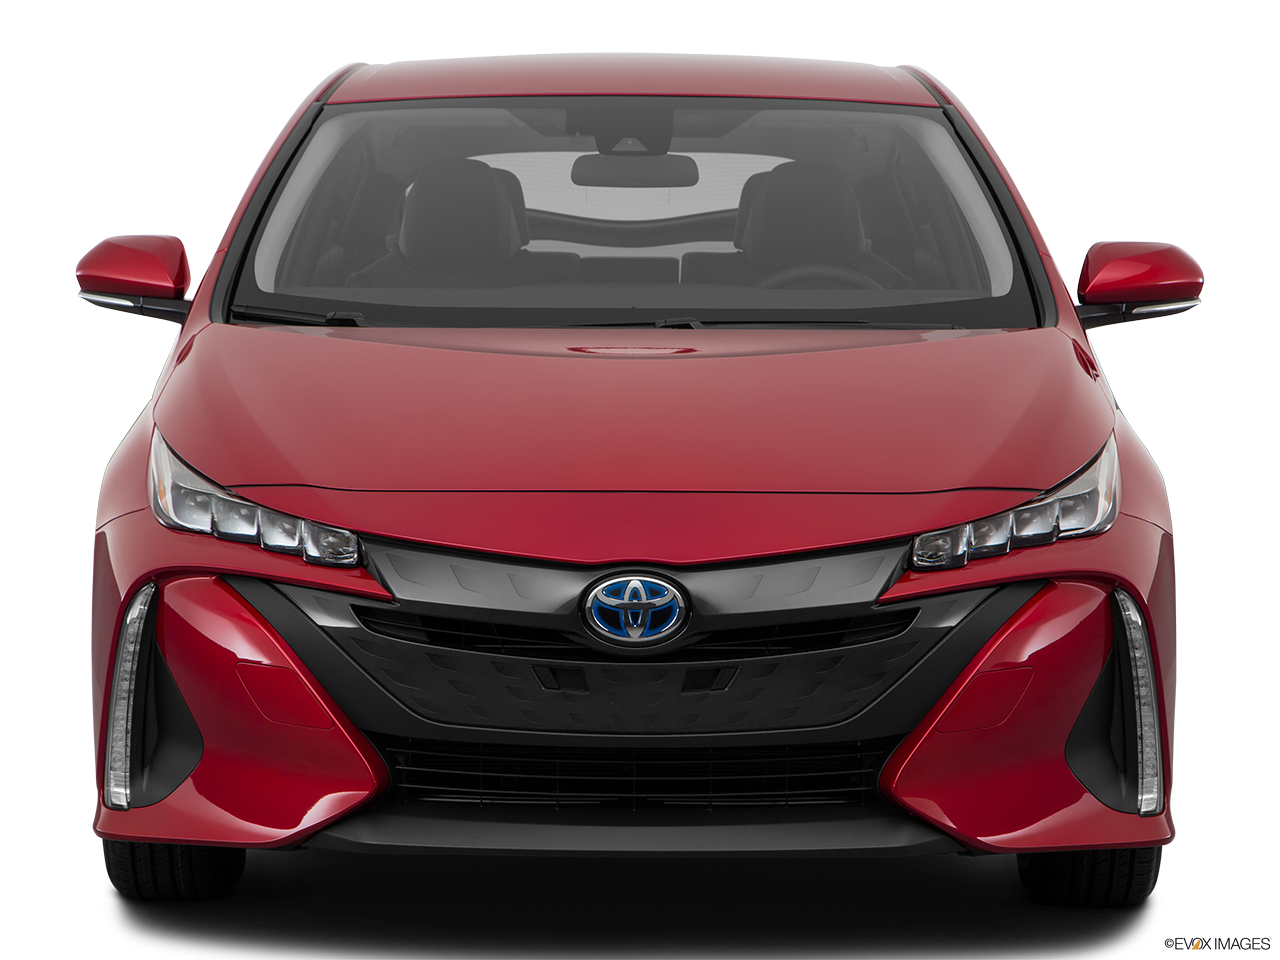 Front view of the Toyota Prius Prime